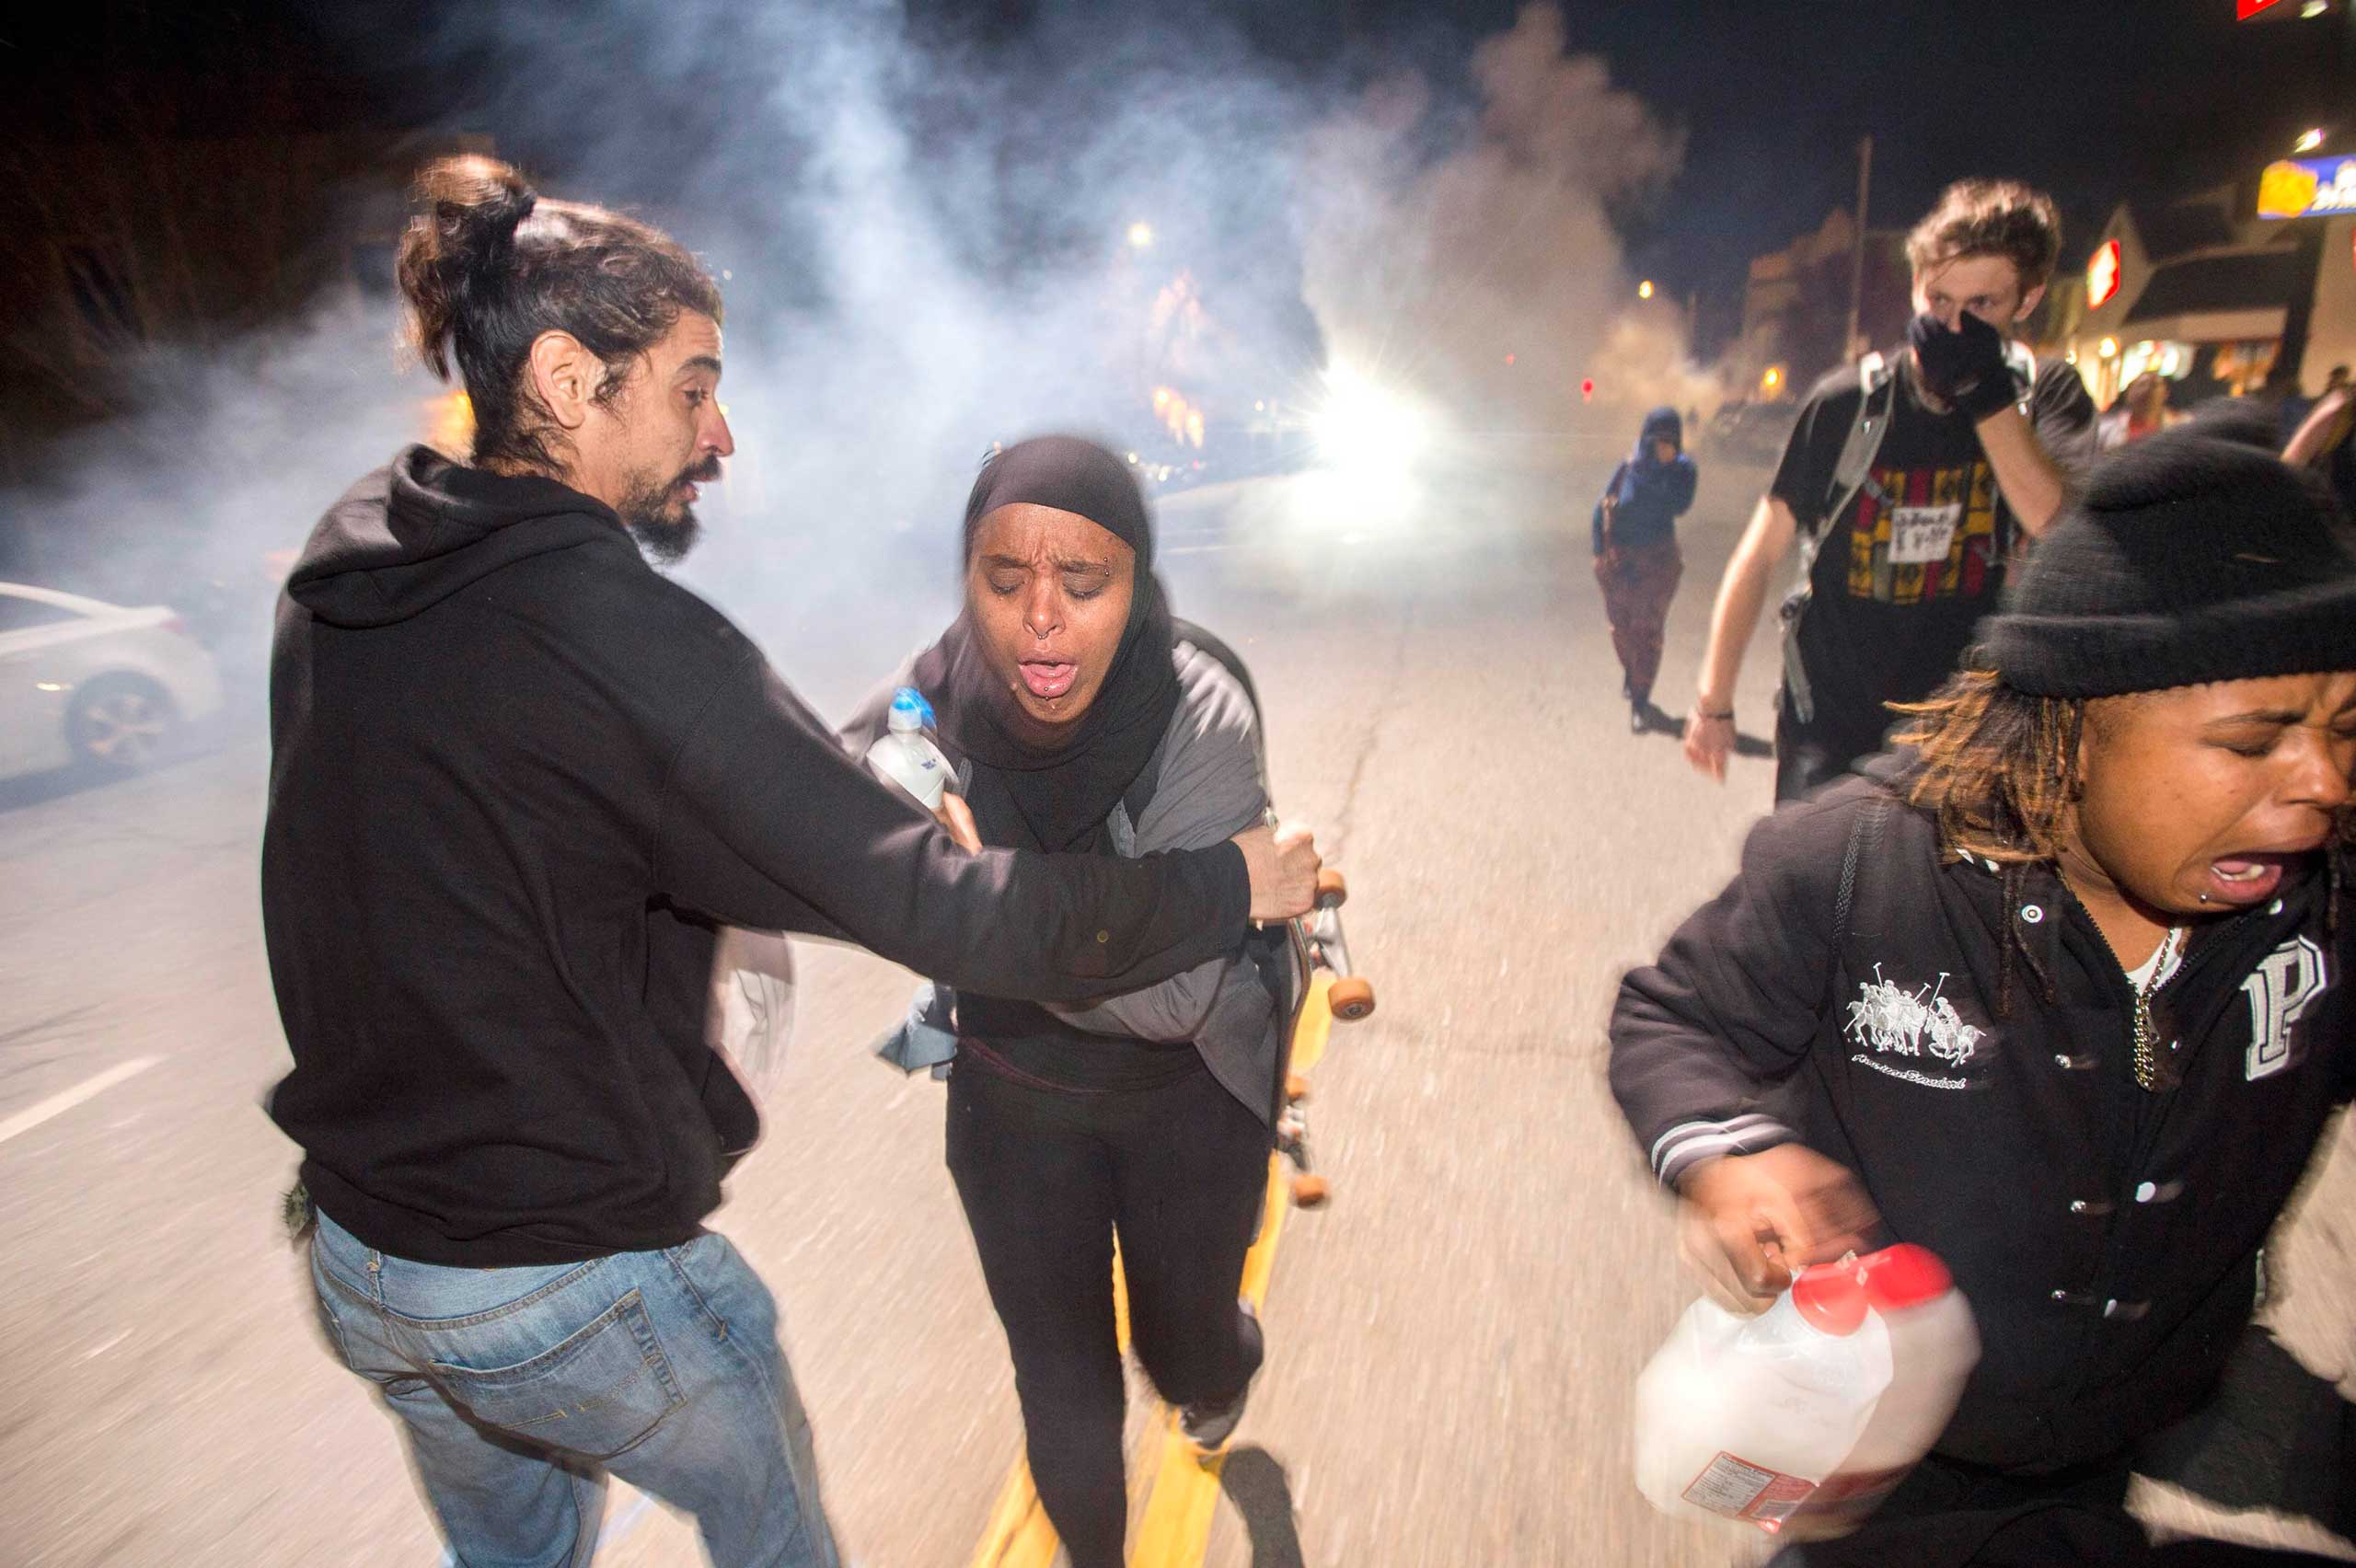 Protesters retreat while police officers deploy teargas to disperse a crowd comprised largely of student protesters in Berkeley, Calif. on Dec. 7, 2014.